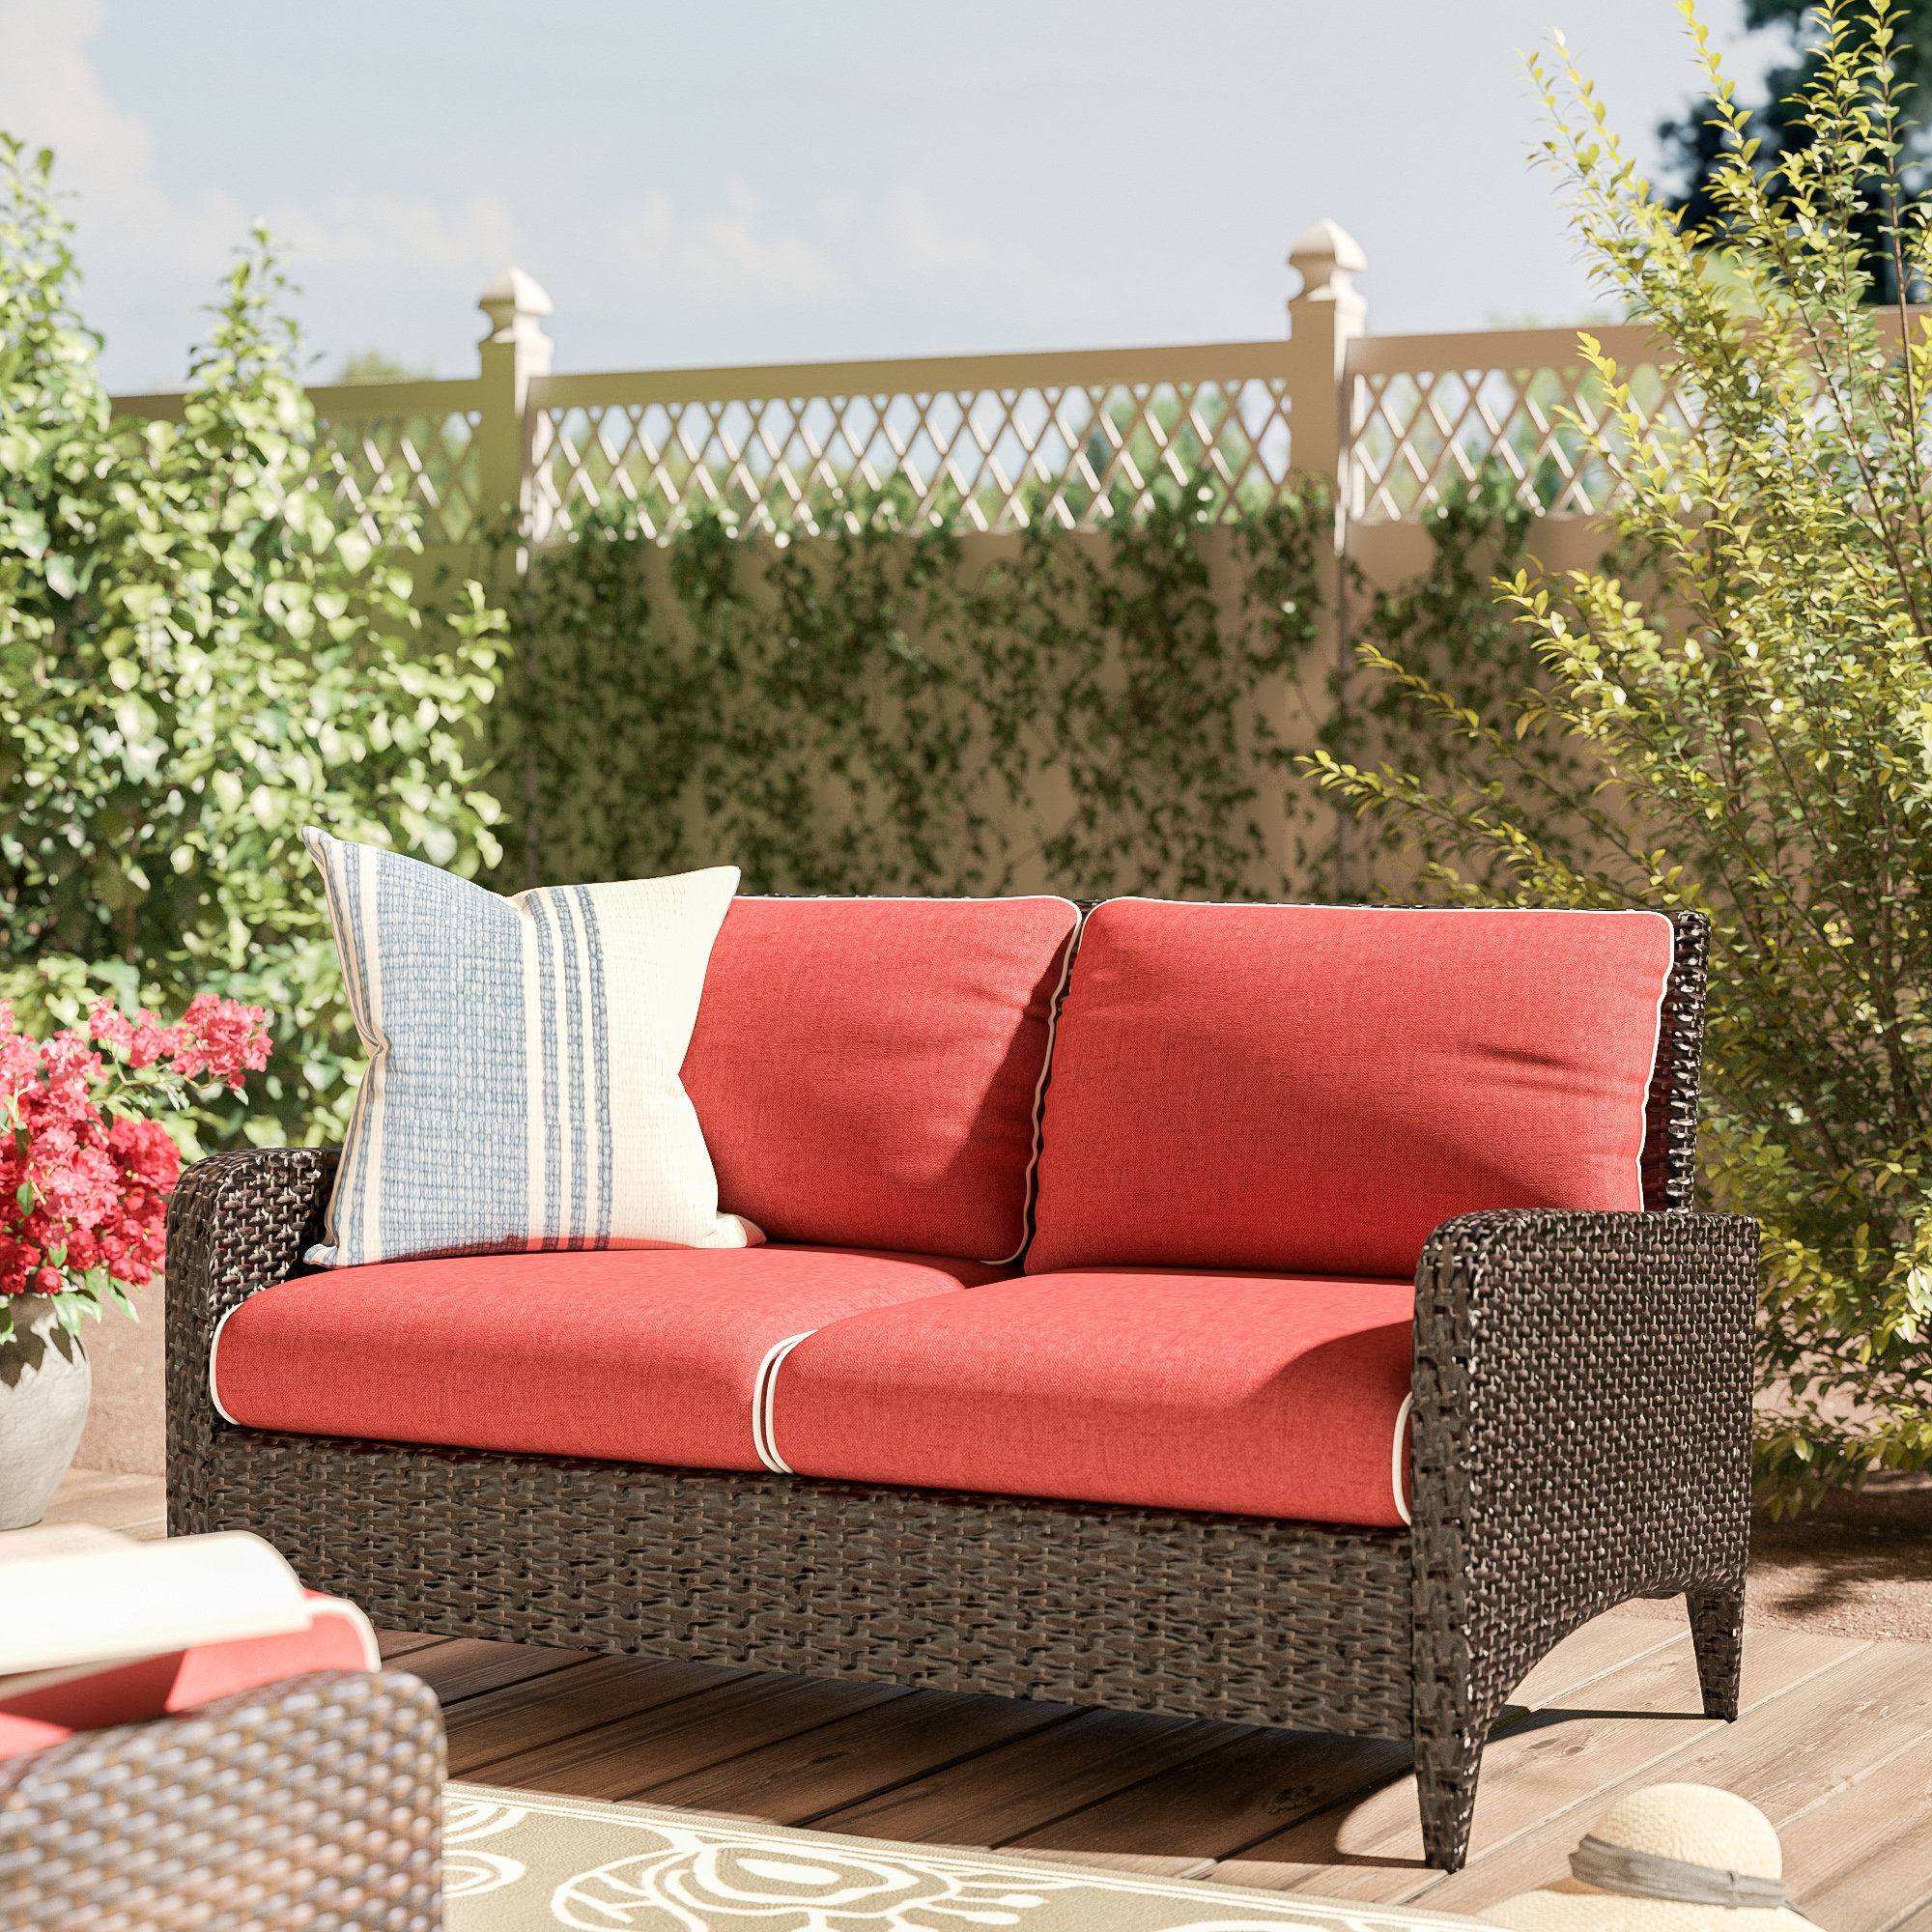 2019 Patio Loveseat With Ottoman (View 2 of 20)